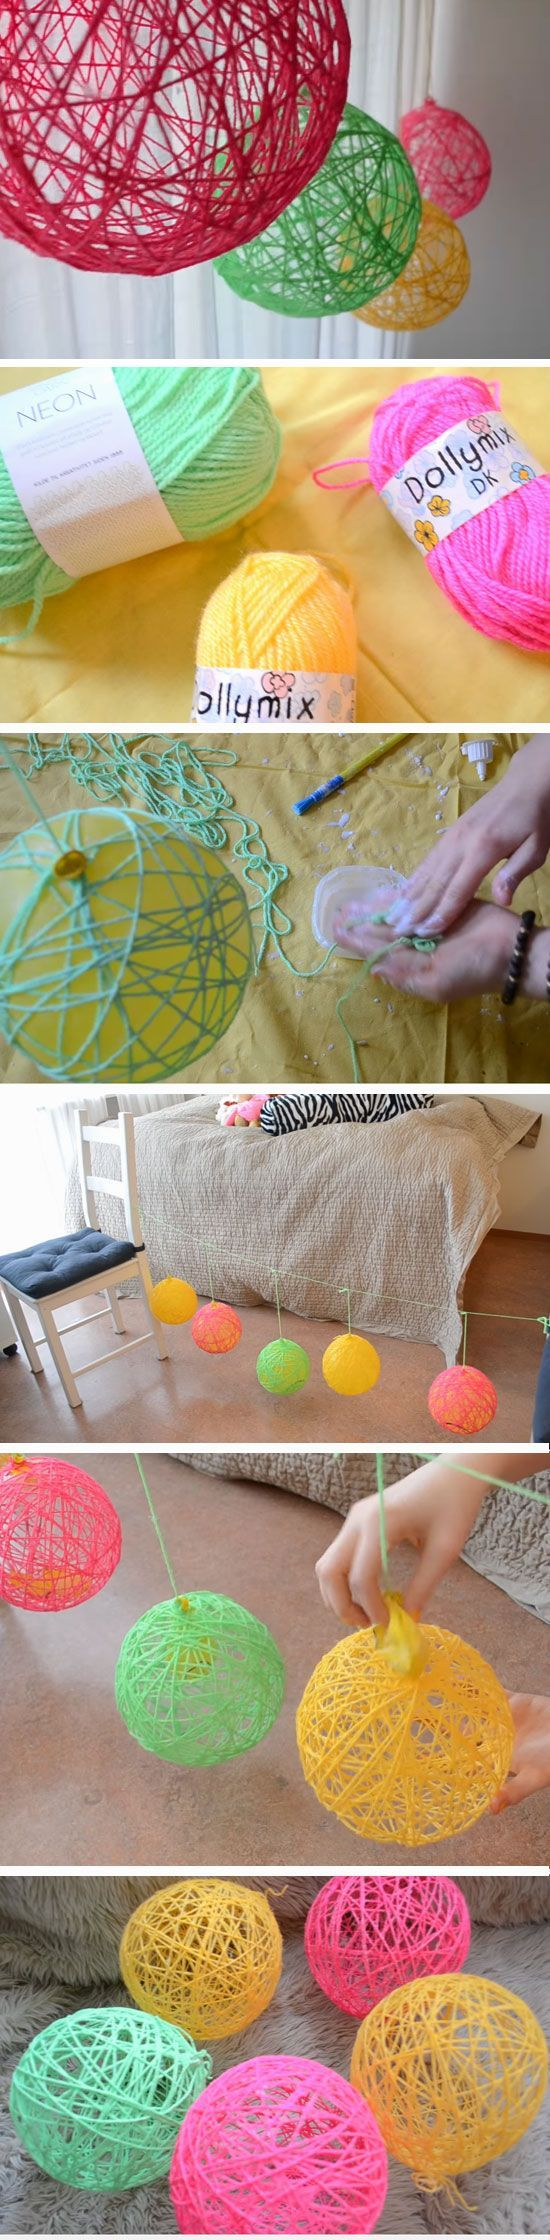 Best 25 projects for kids ideas on pinterest fun projects for kids diy for kids and crafts for boys